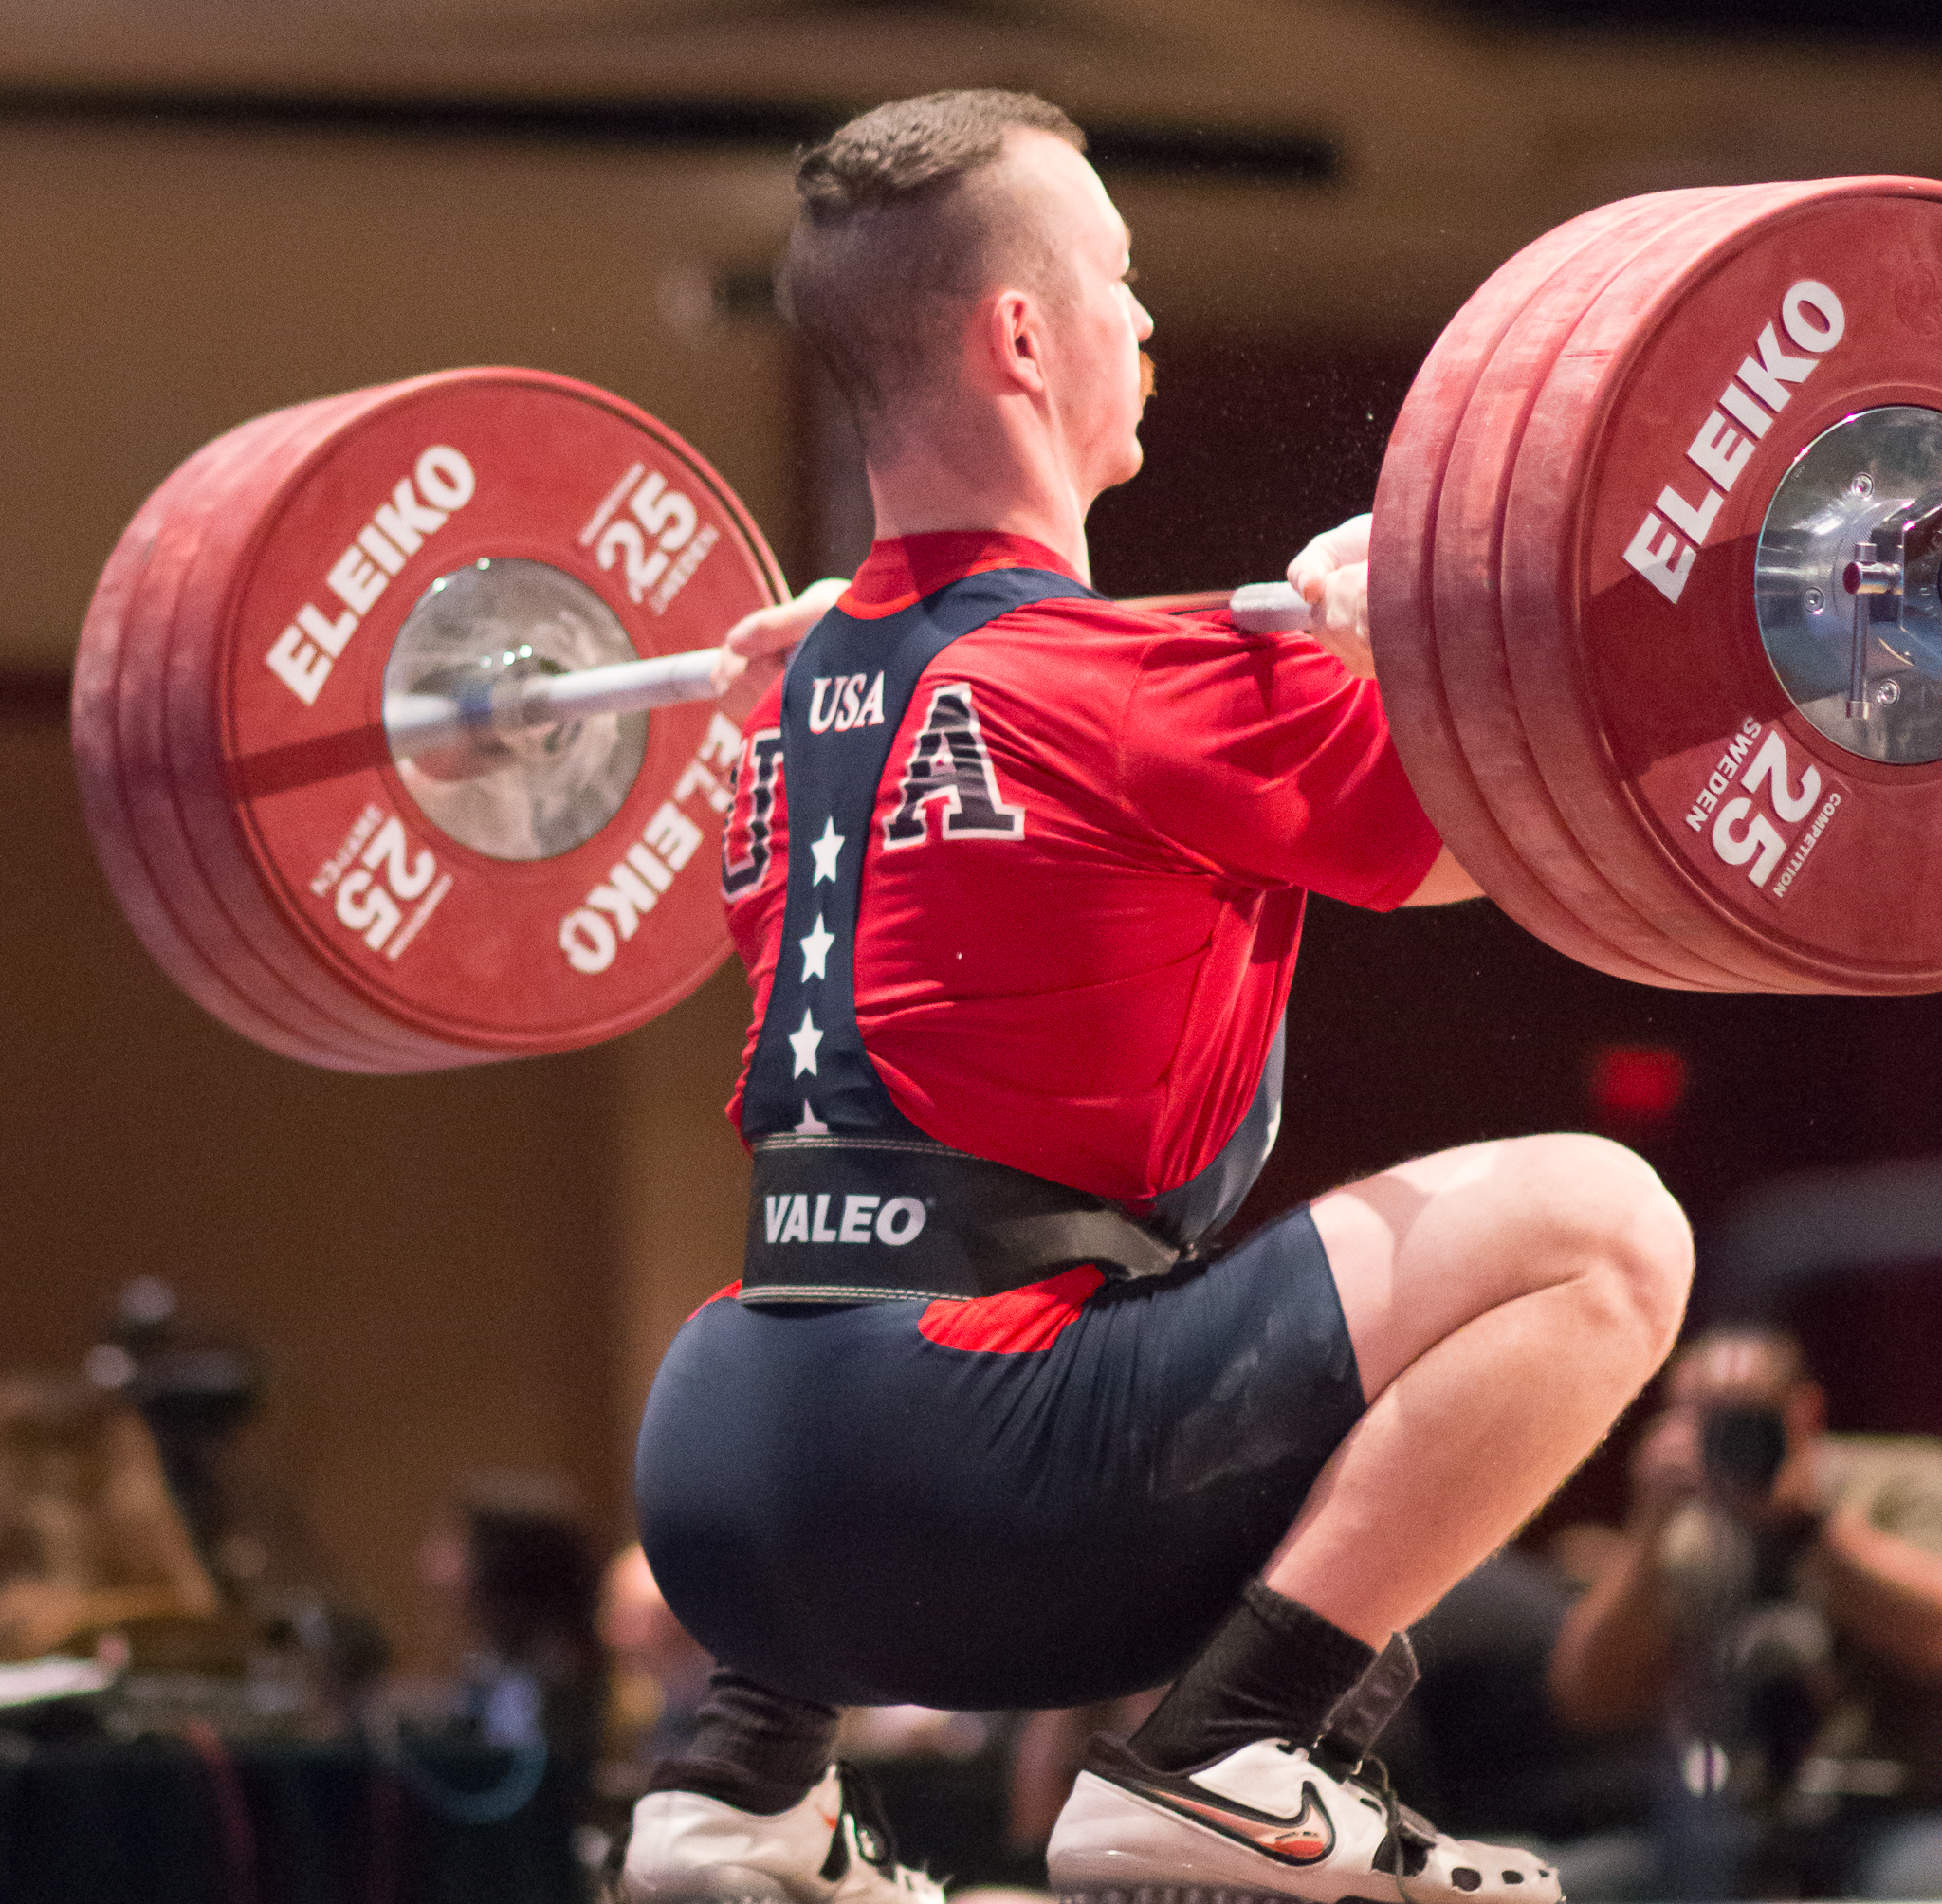 session-a-favorites-american-open-2016-weightlifting-photography (35 of 38).jpg